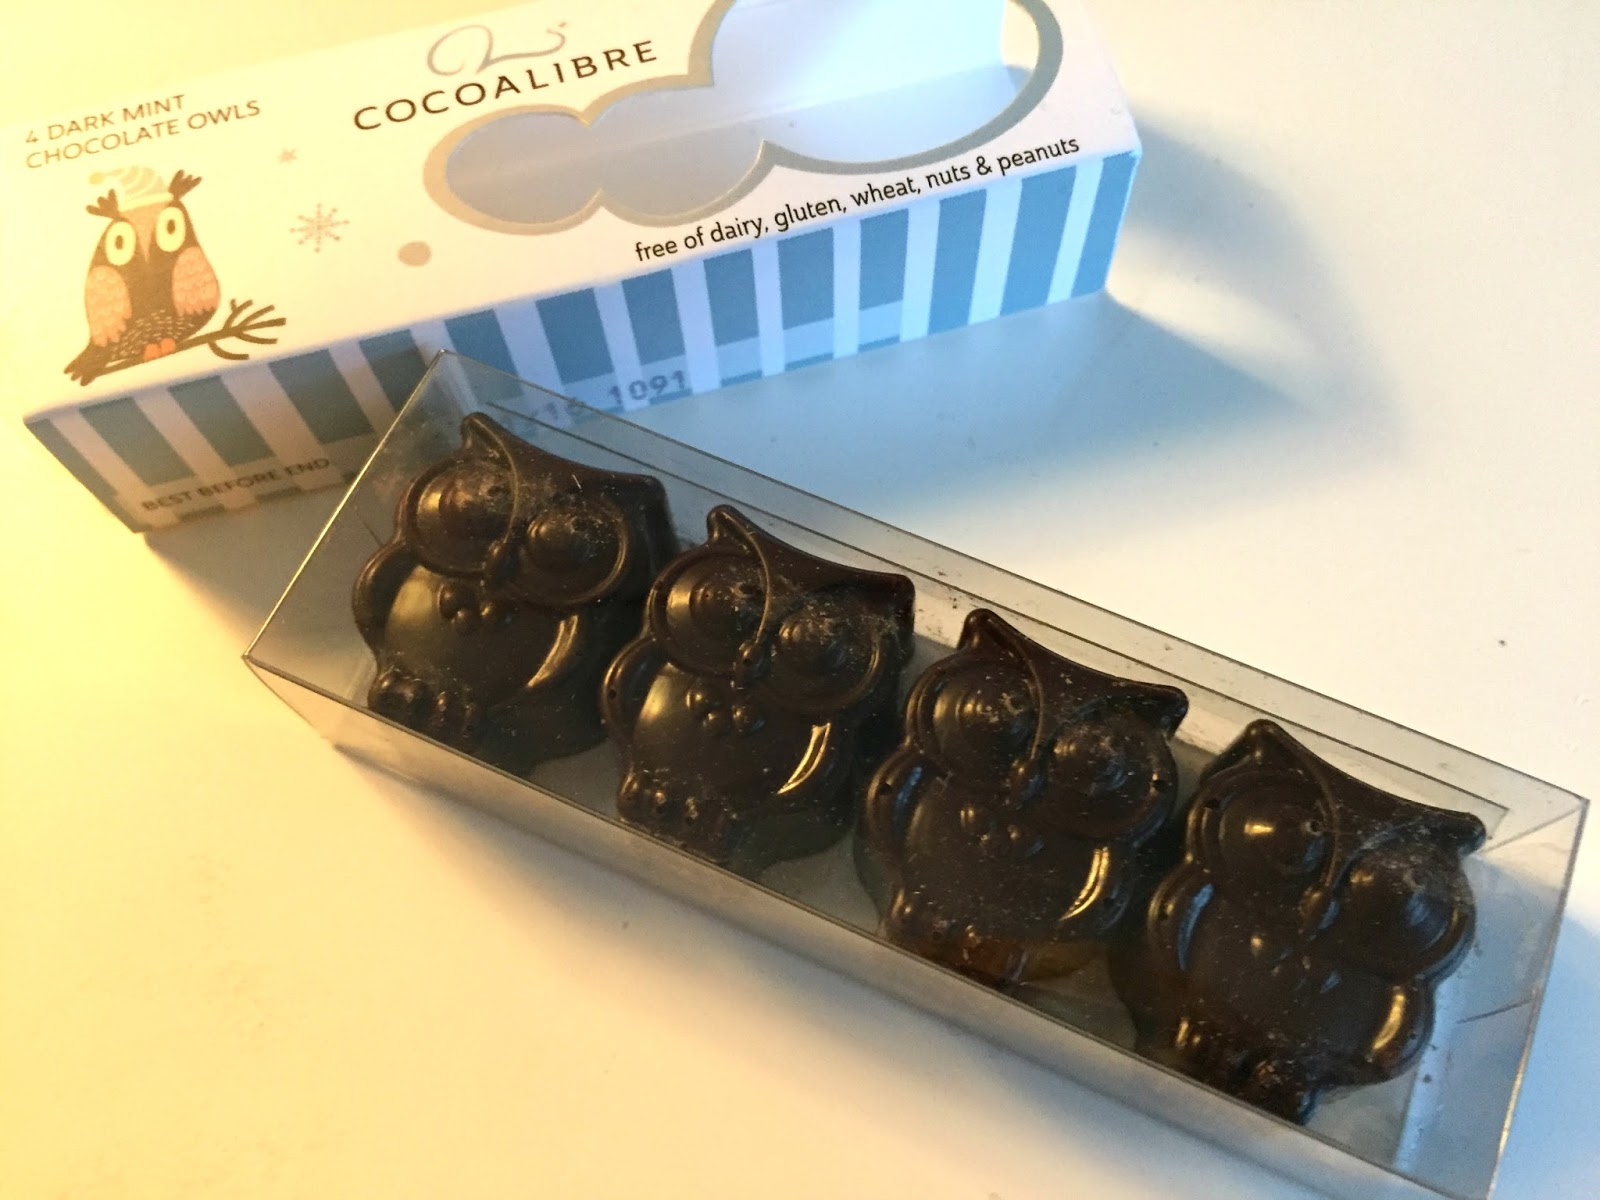 Cocoalibre Dark Mint Chocolate Owls